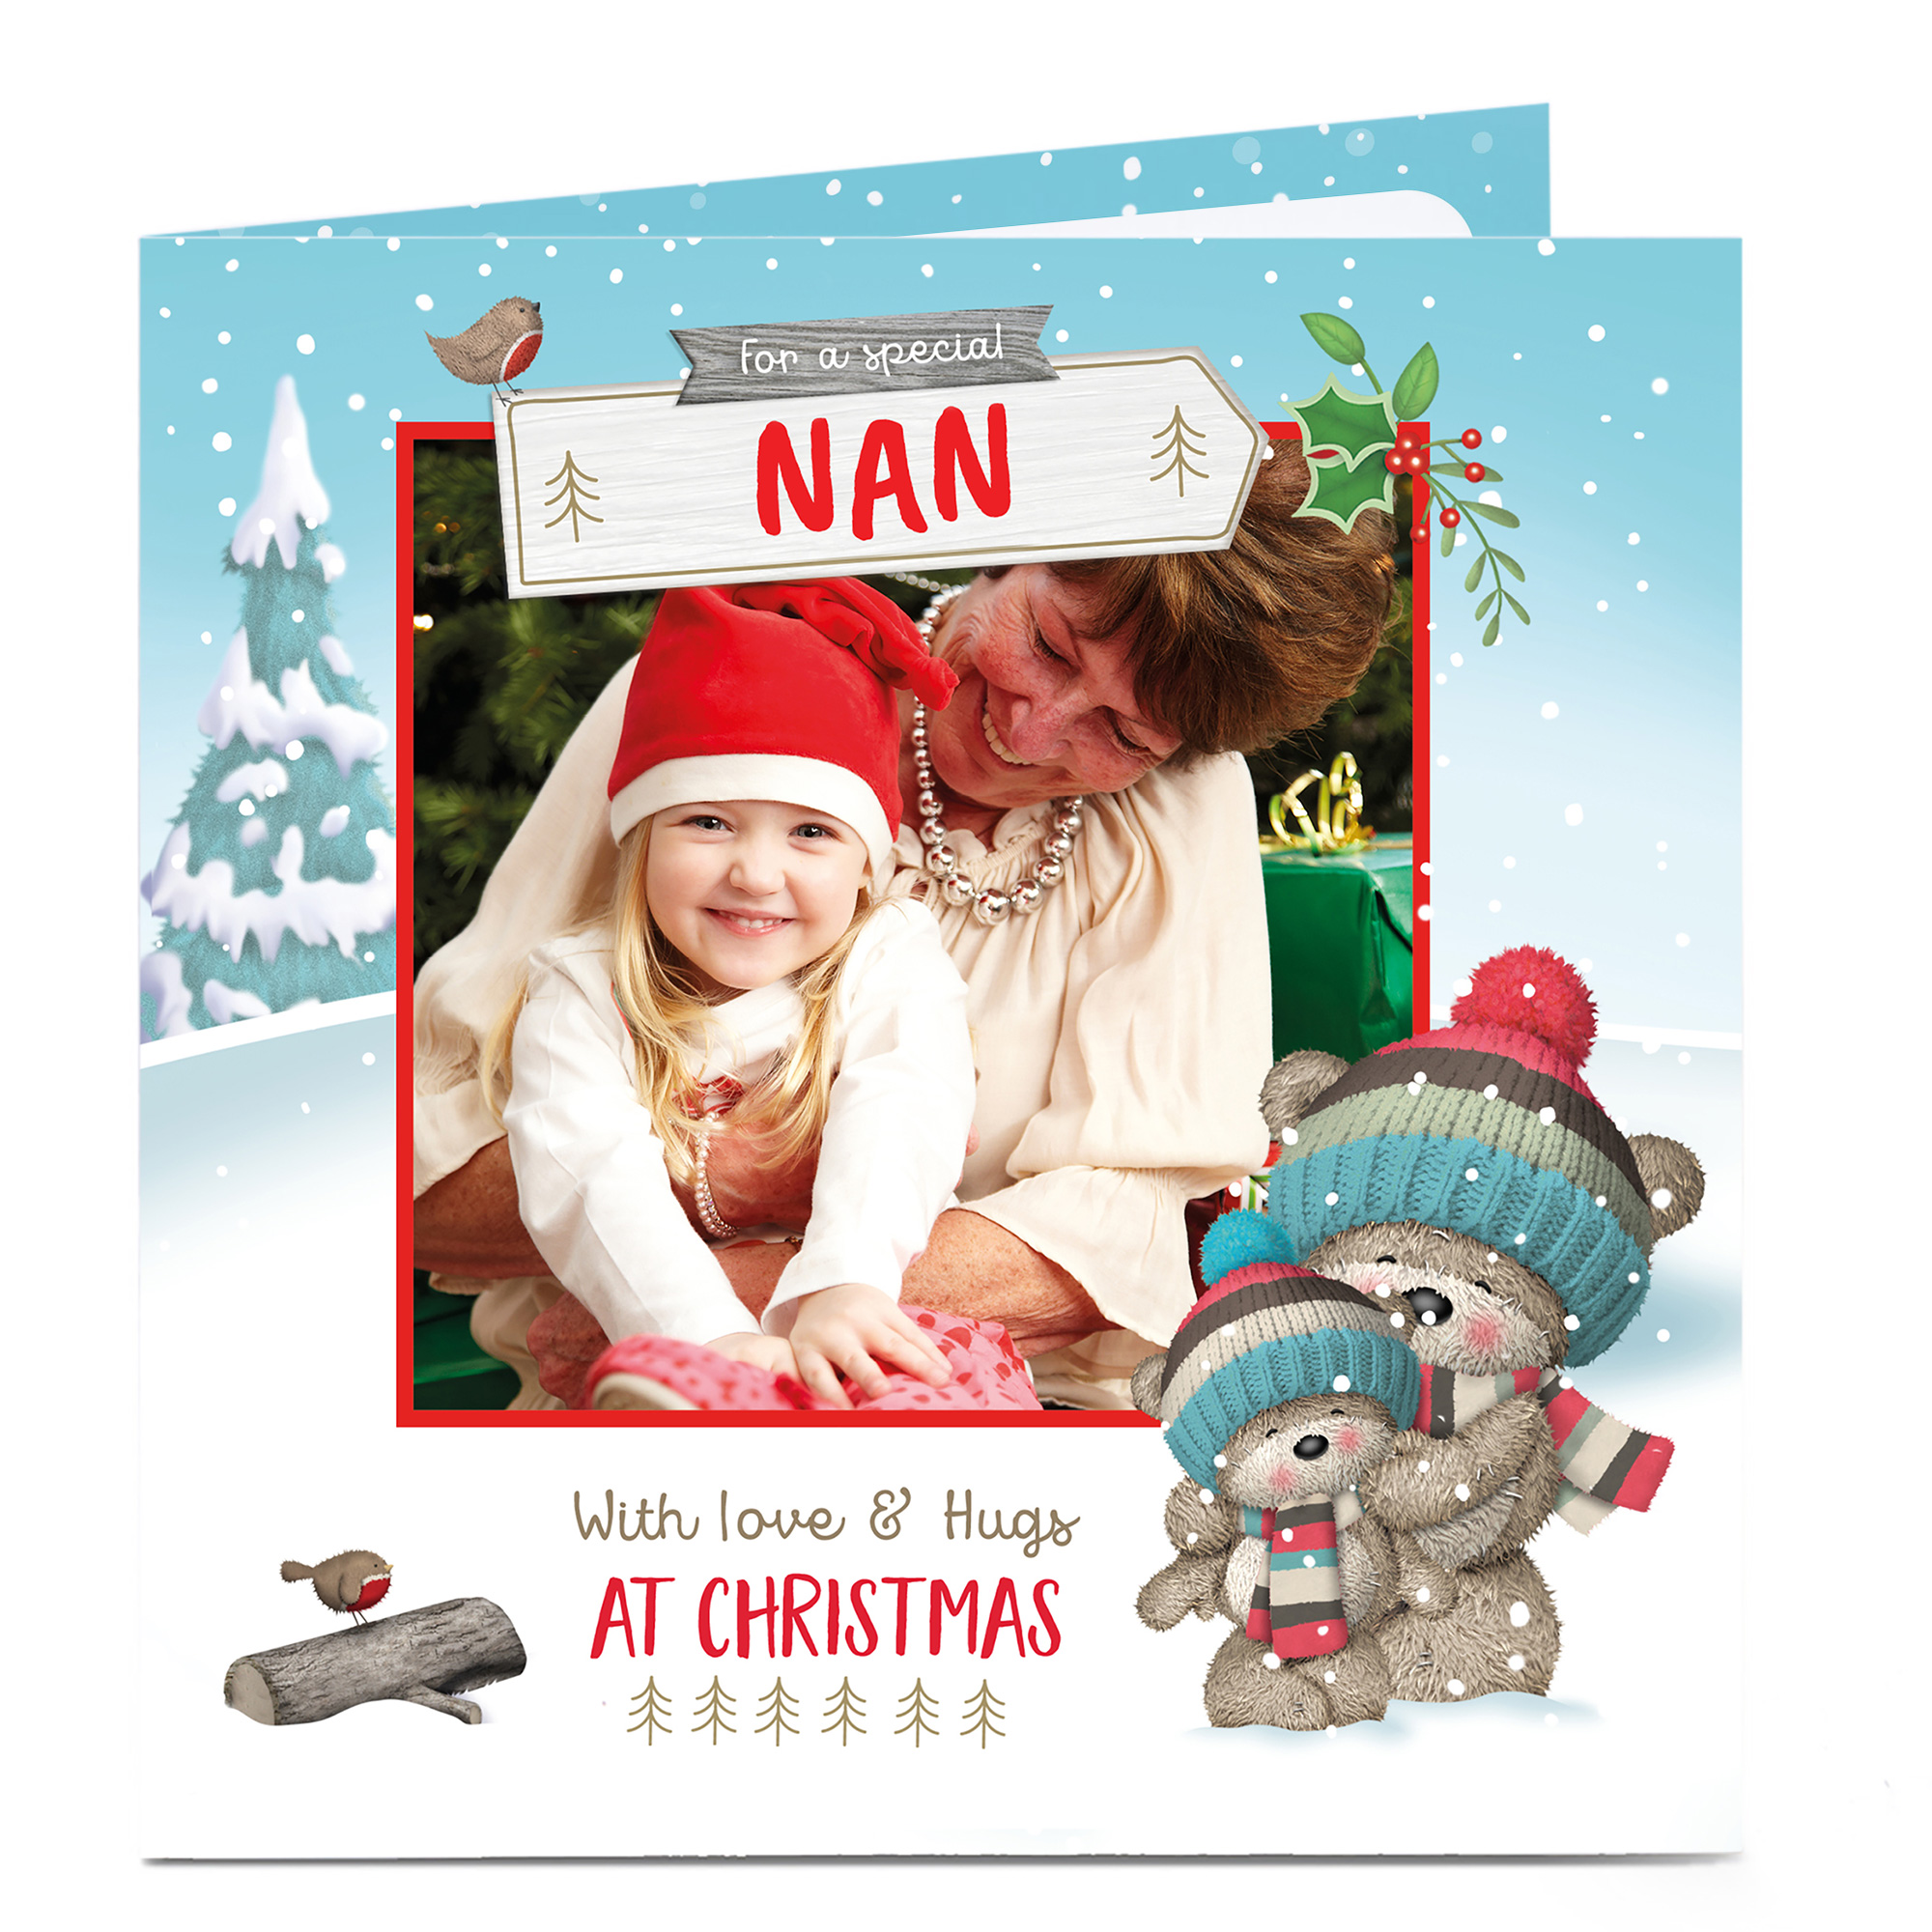 Photo Christmas Card - With Love & Hugs, Nan